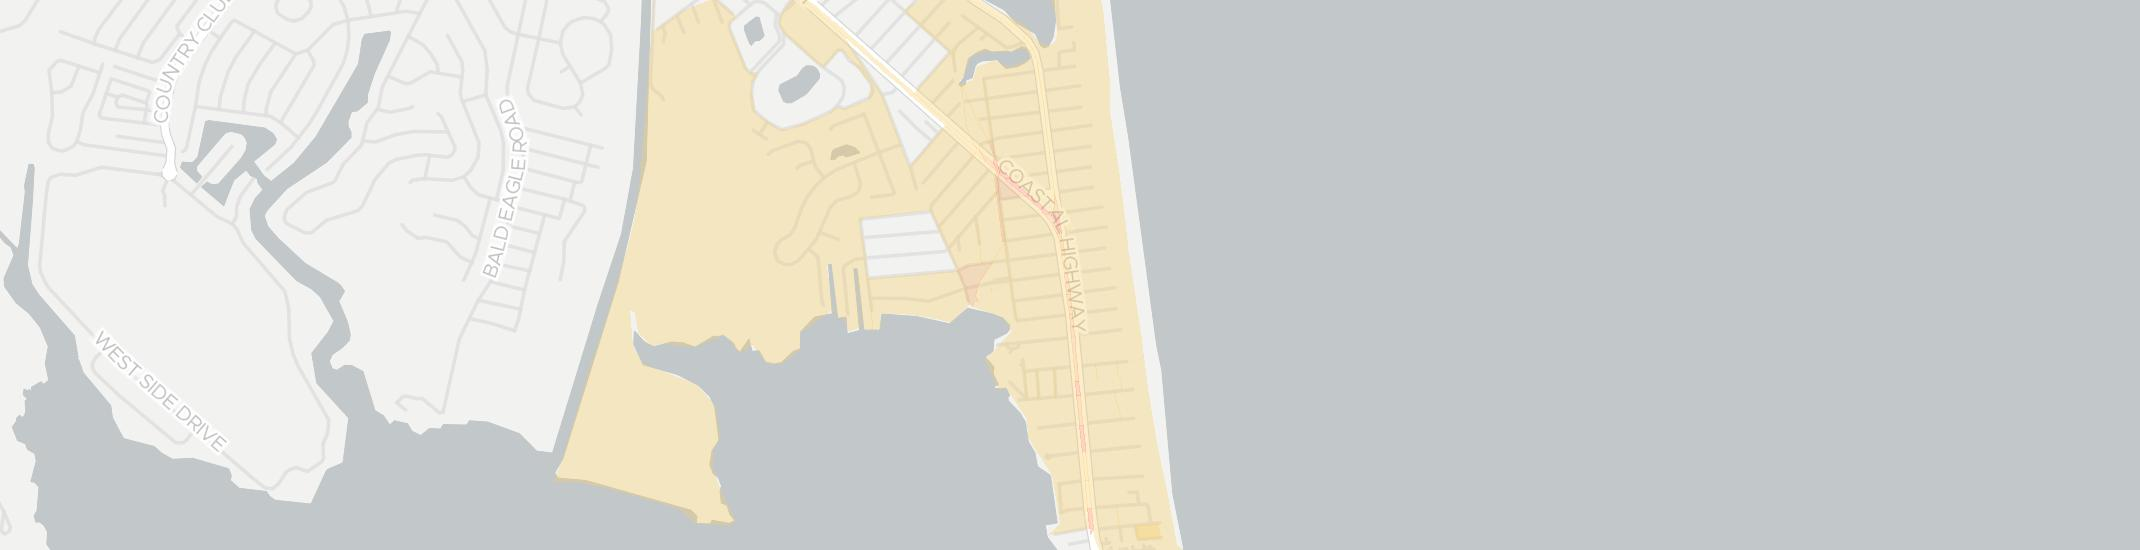 Dewey Beach Internet Competition Map. Click for interactive map.